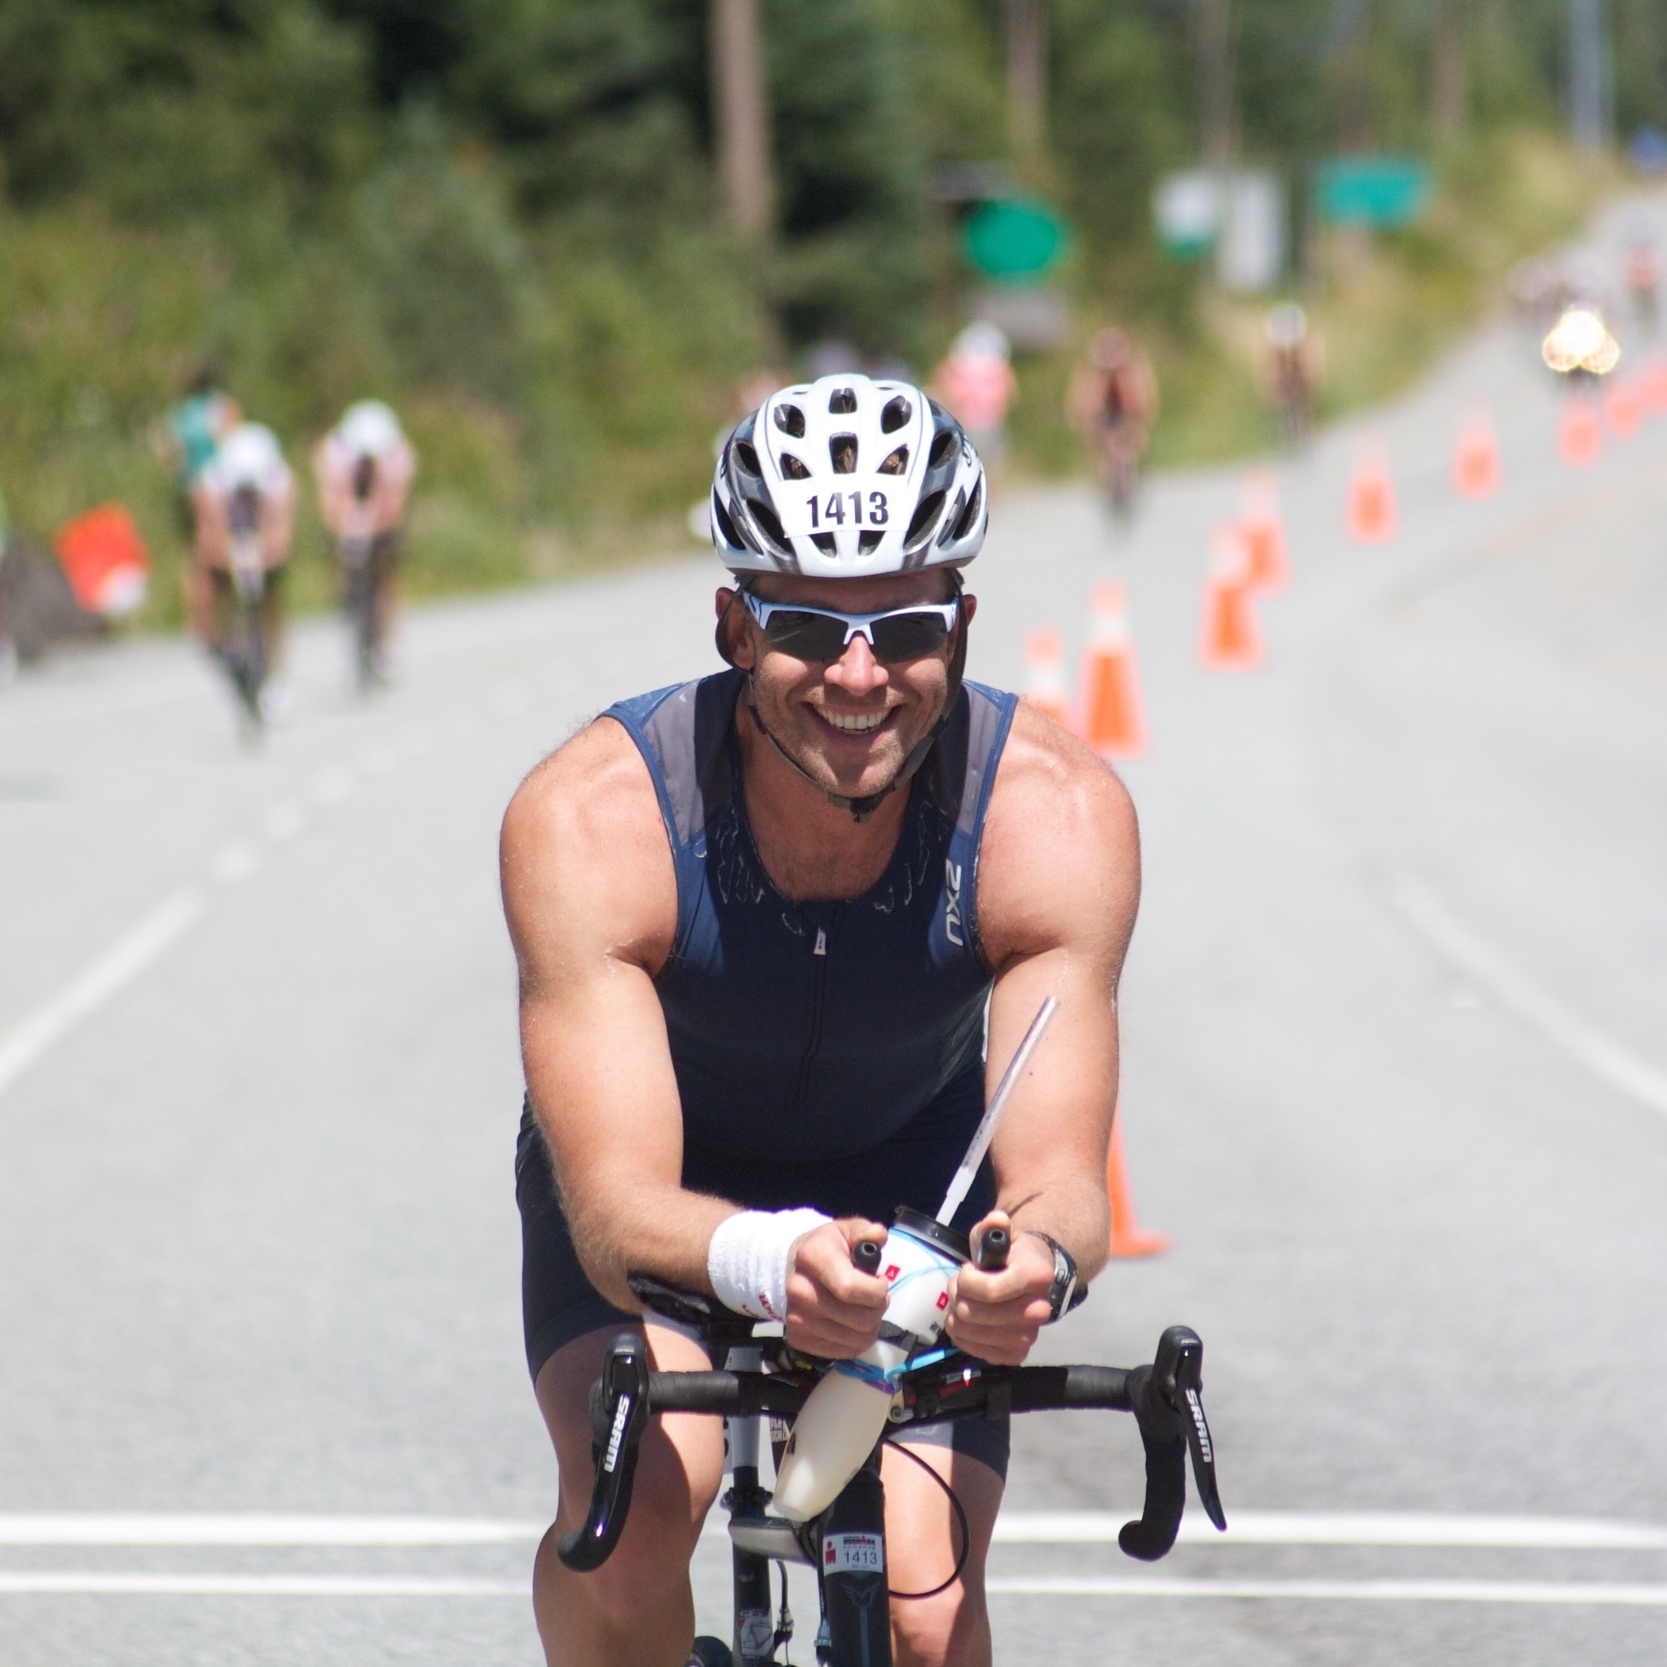 Greg is all smiles at Ironman Canada